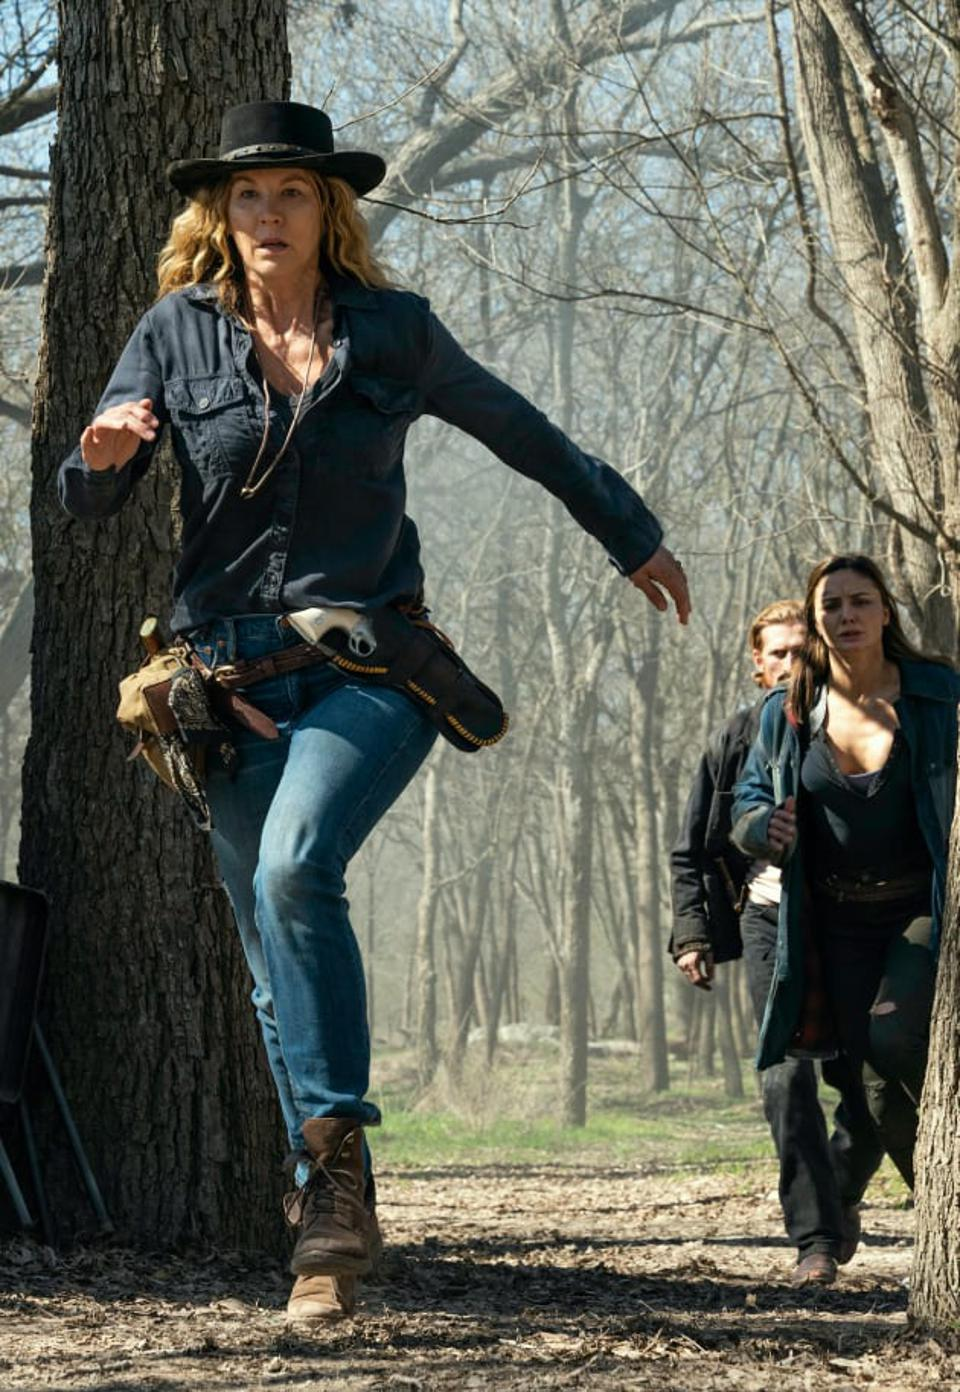 June, Dwight and Sherry walk through the forest in Fear The Walking Dead